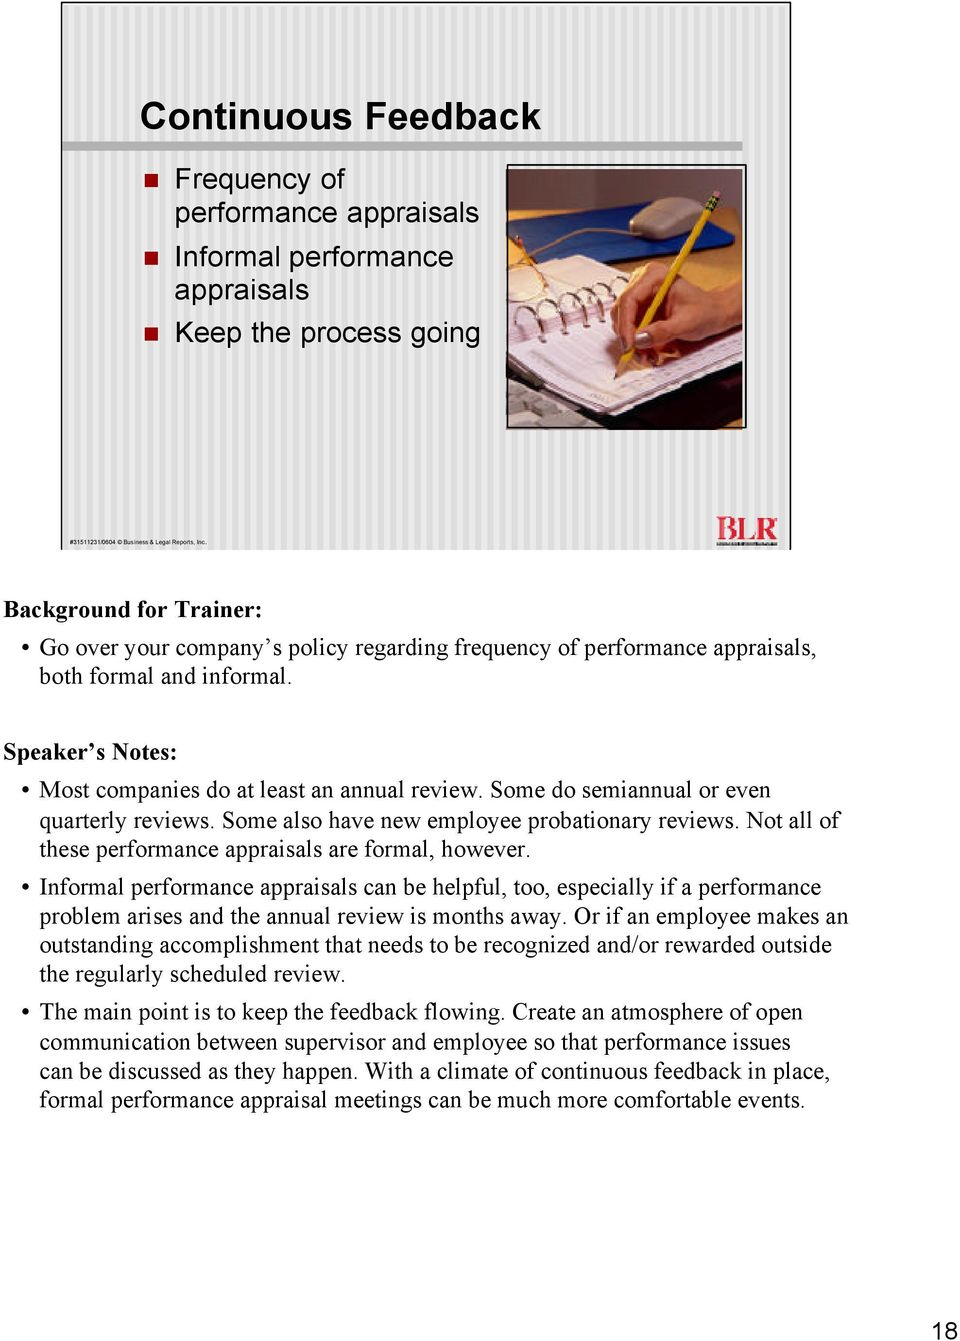 Not all of these performance appraisals are formal, however. Informal performance appraisals can be helpful, too, especially if a performance problem arises and the annual review is months away.